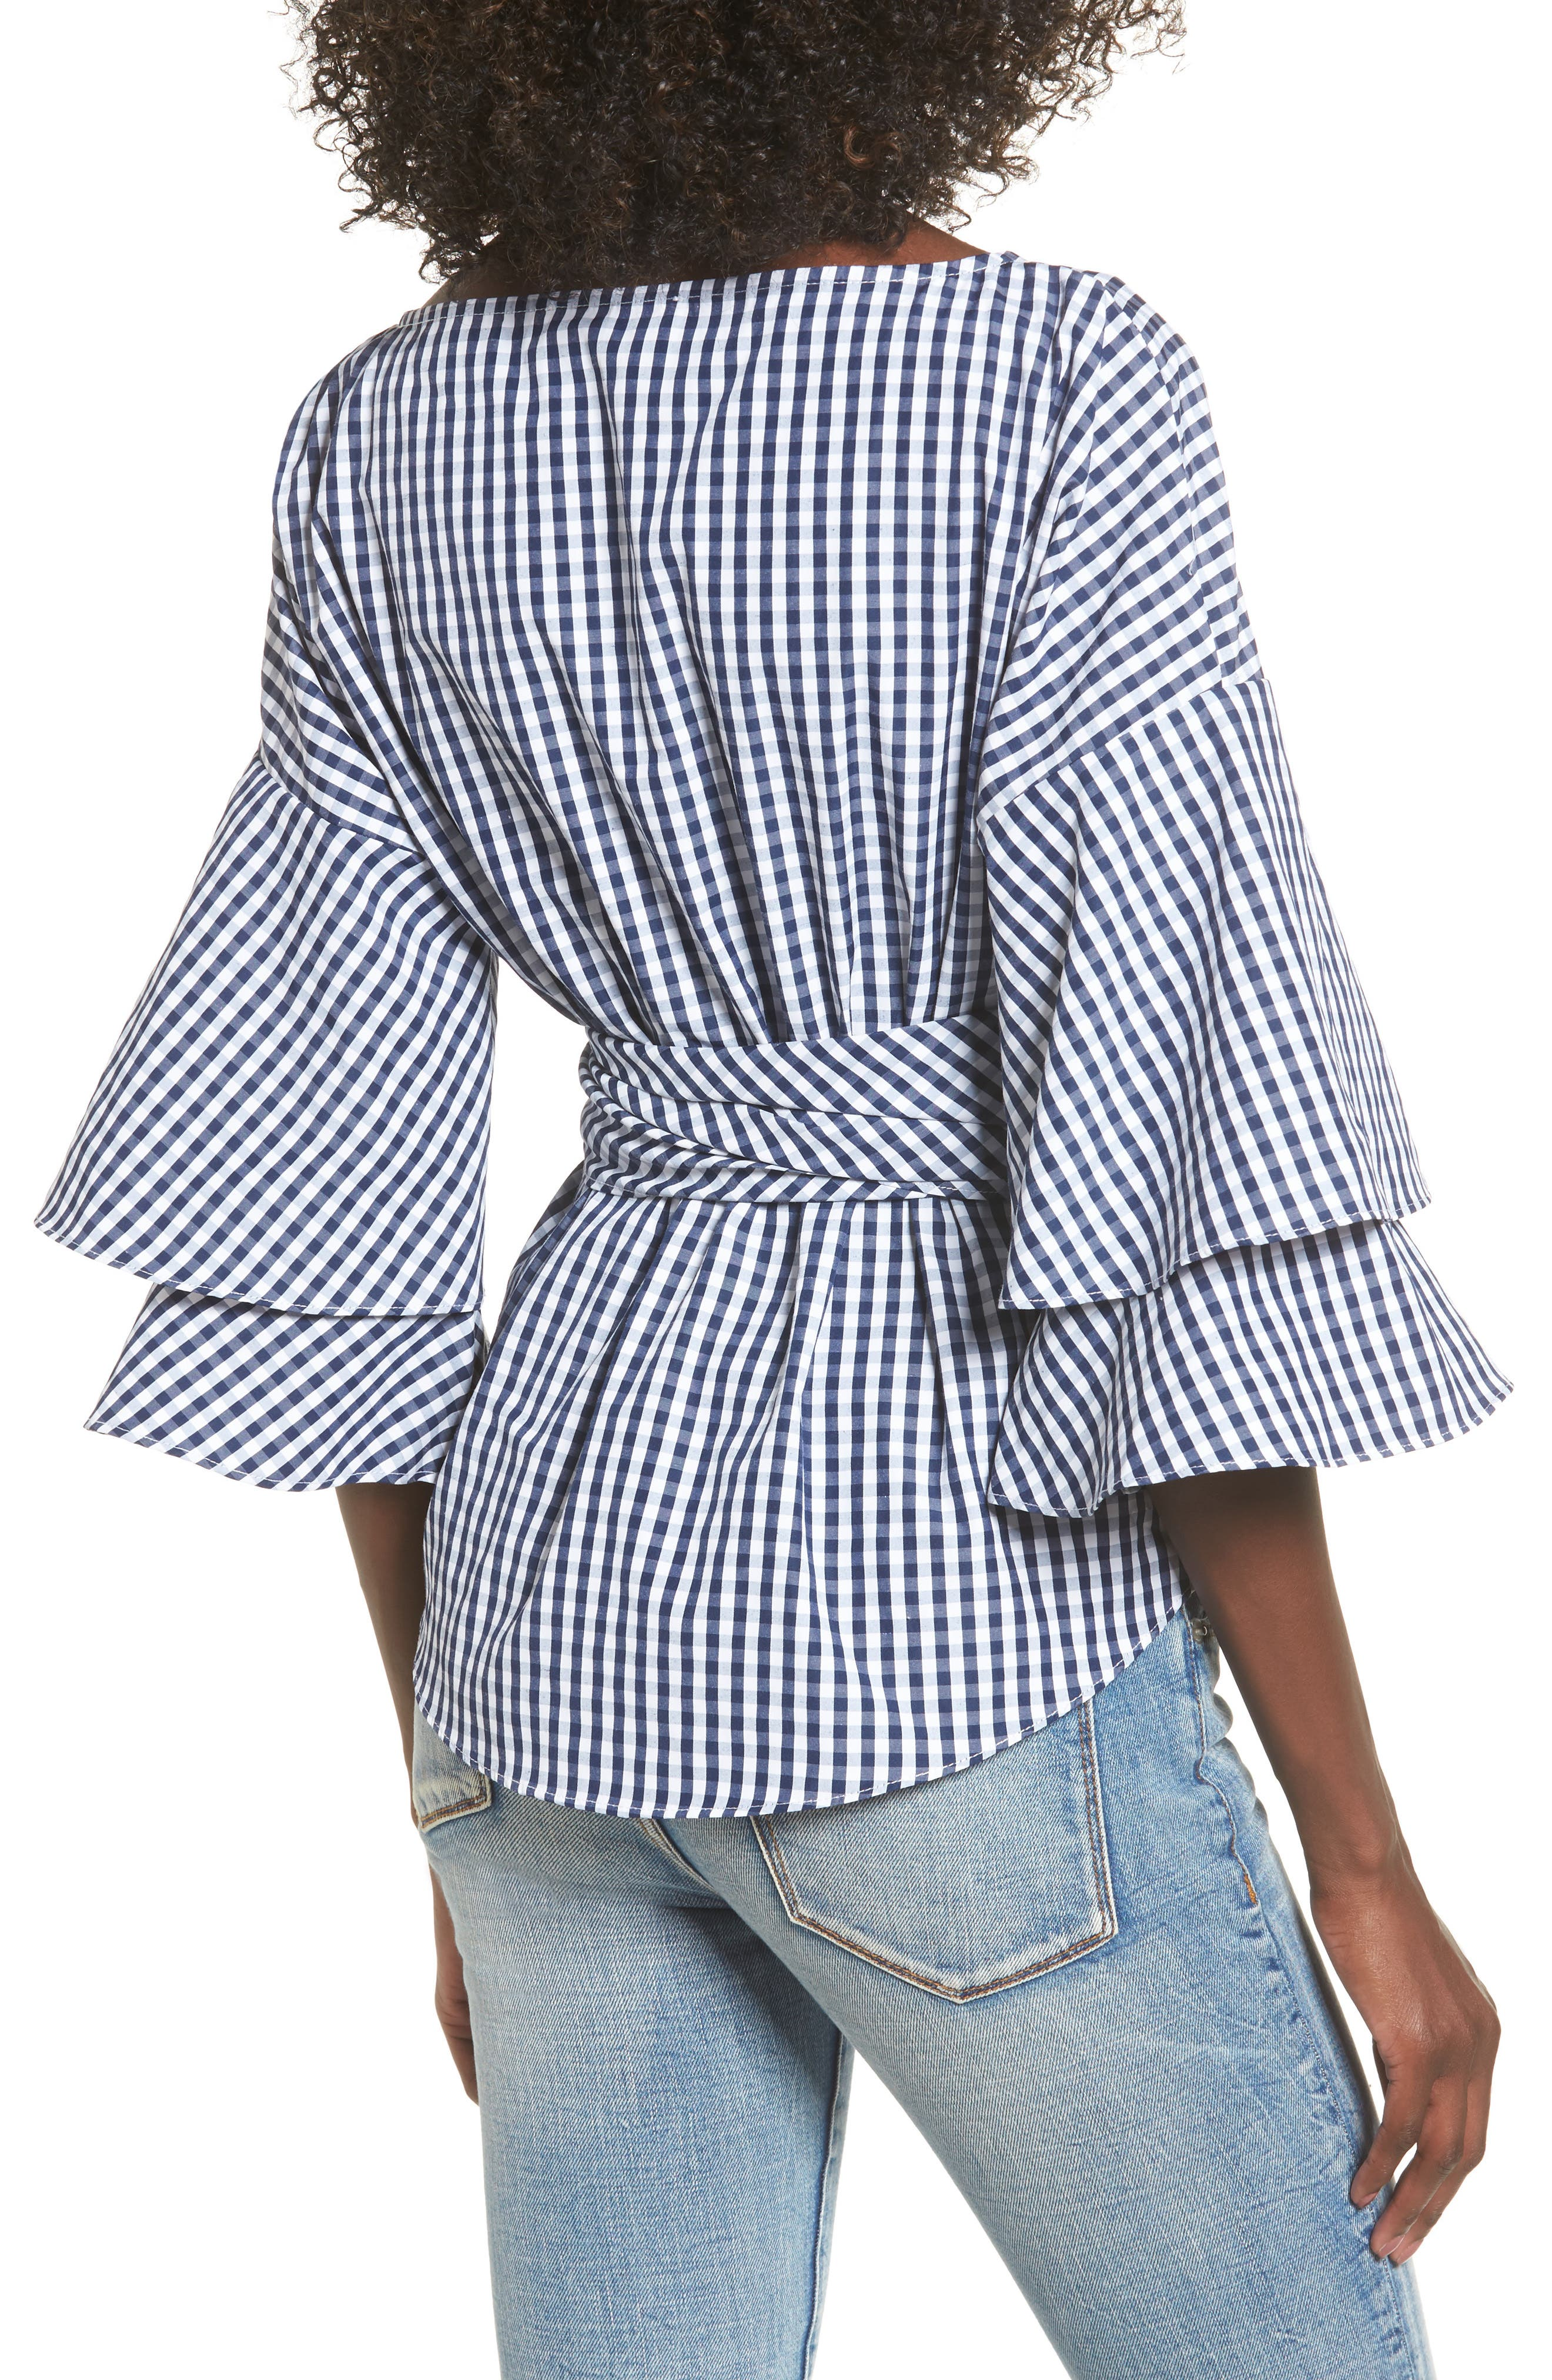 Beckett Tiered Bell Sleeve Top,                             Alternate thumbnail 3, color,                             Navy/ White